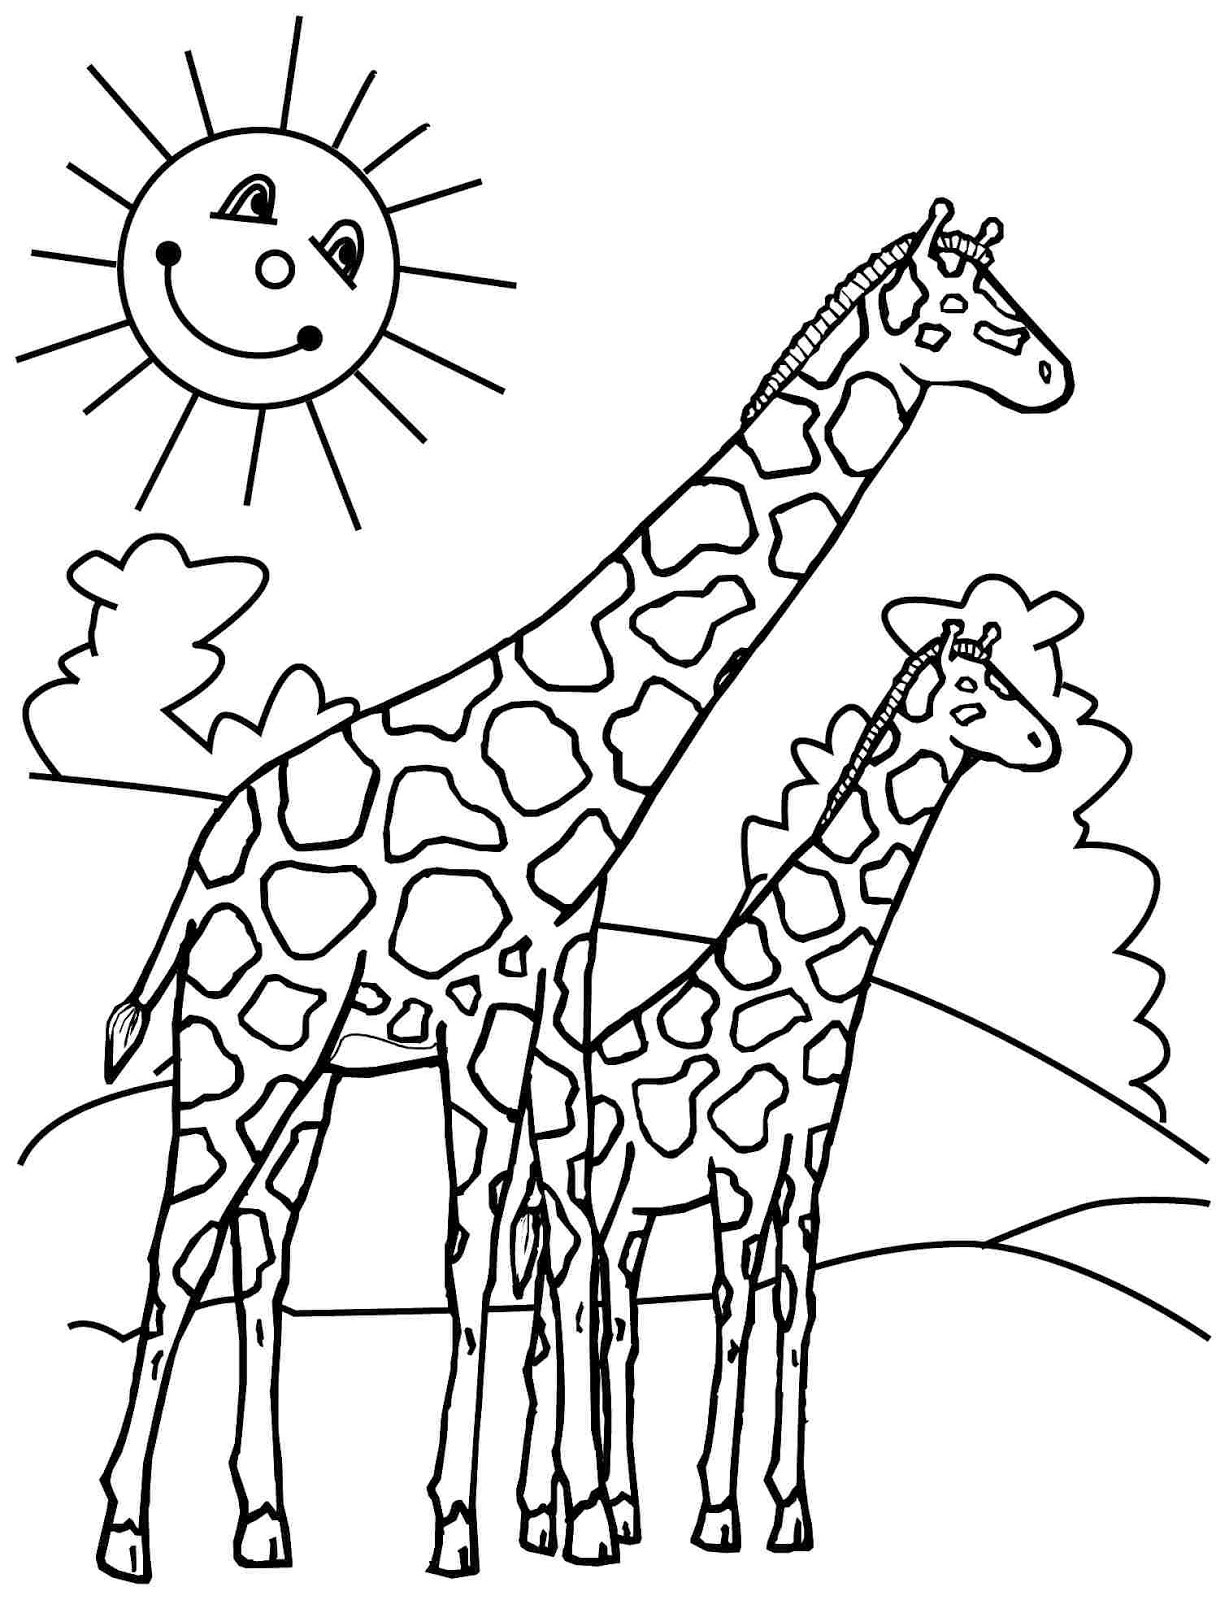 Coloring Pages Giraffe  Top 11 Free Printable Giraffe Coloring Pages For Kids